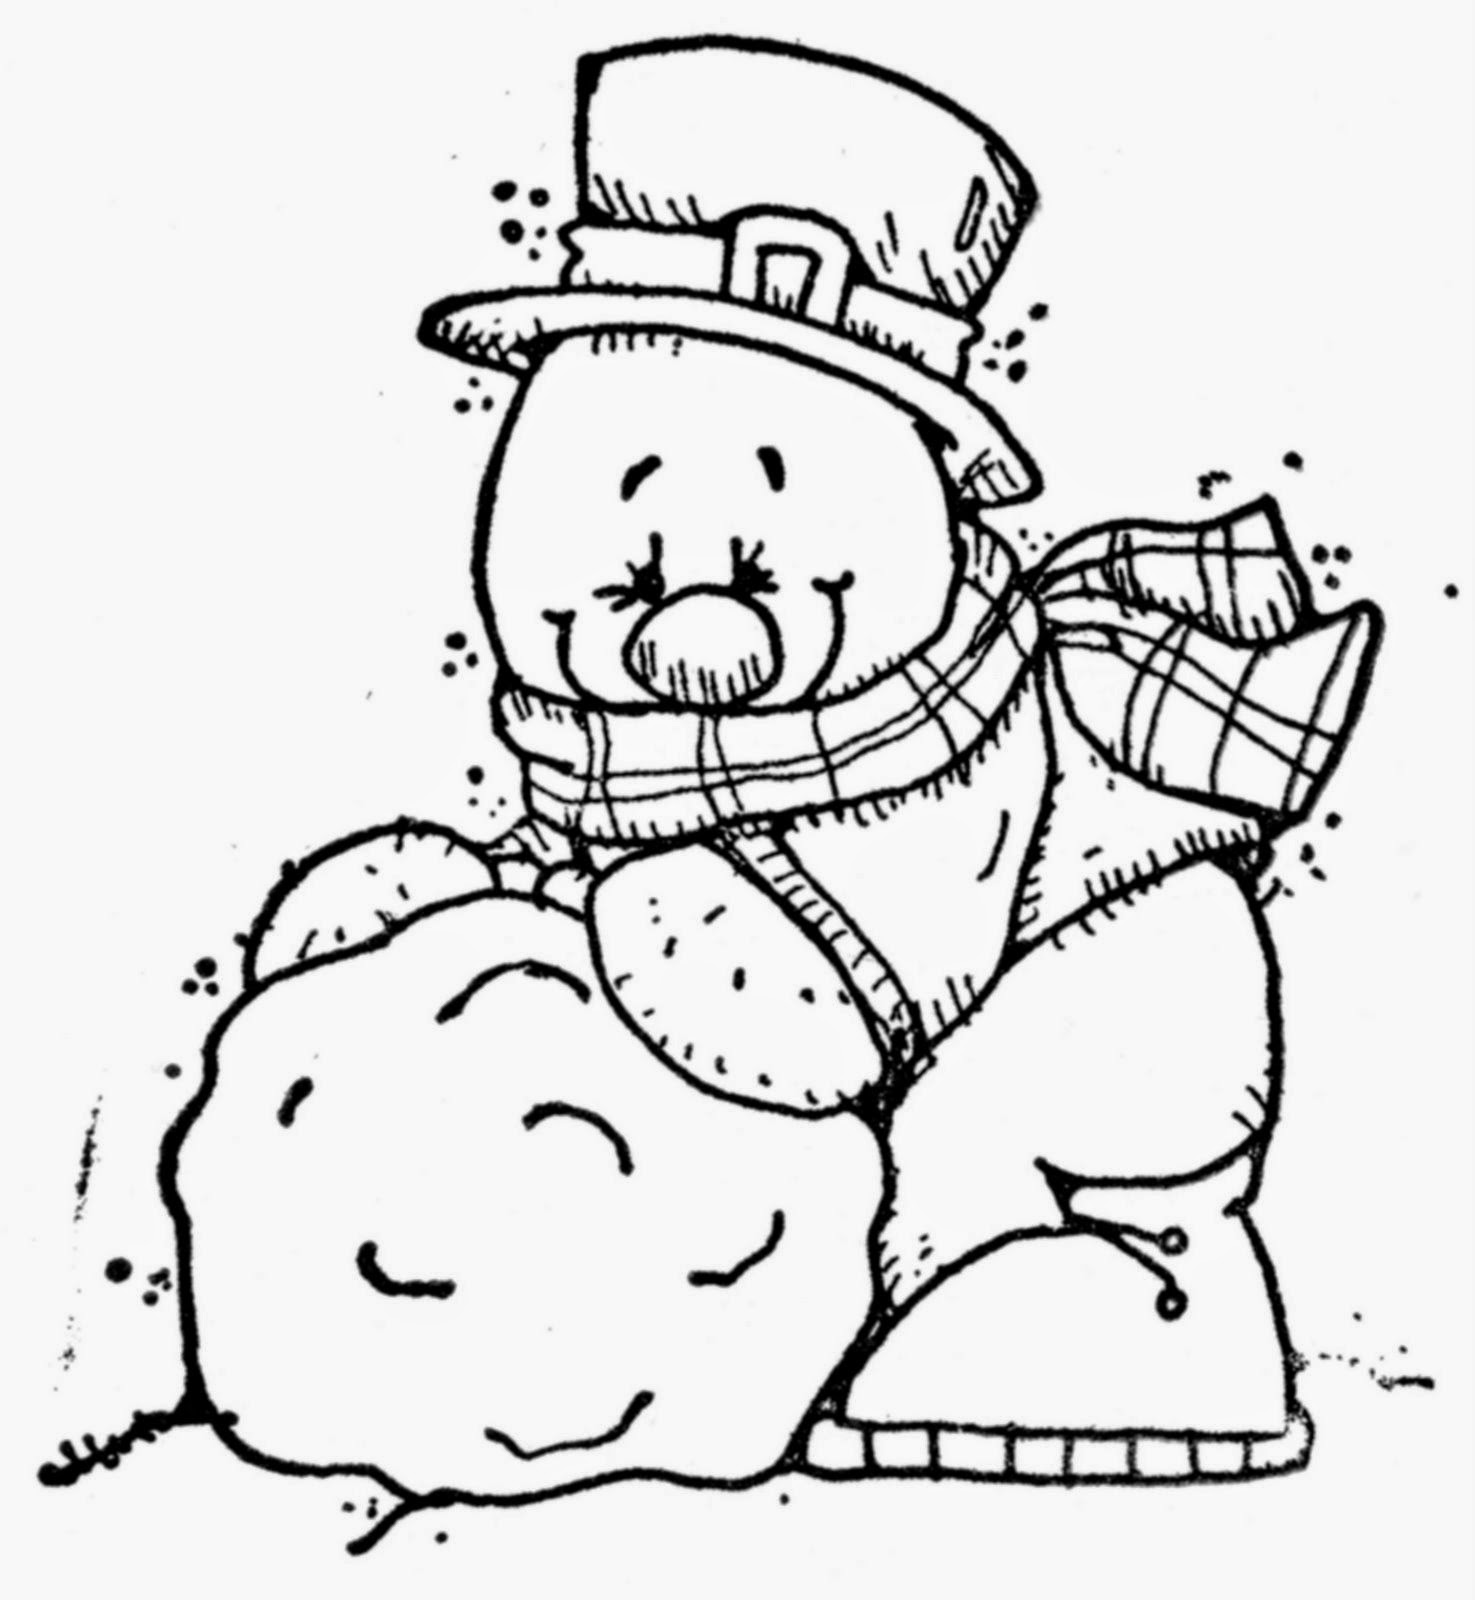 free printable snowman coloring pages cartoon snowman on a beach coloring page free printable coloring pages printable free snowman